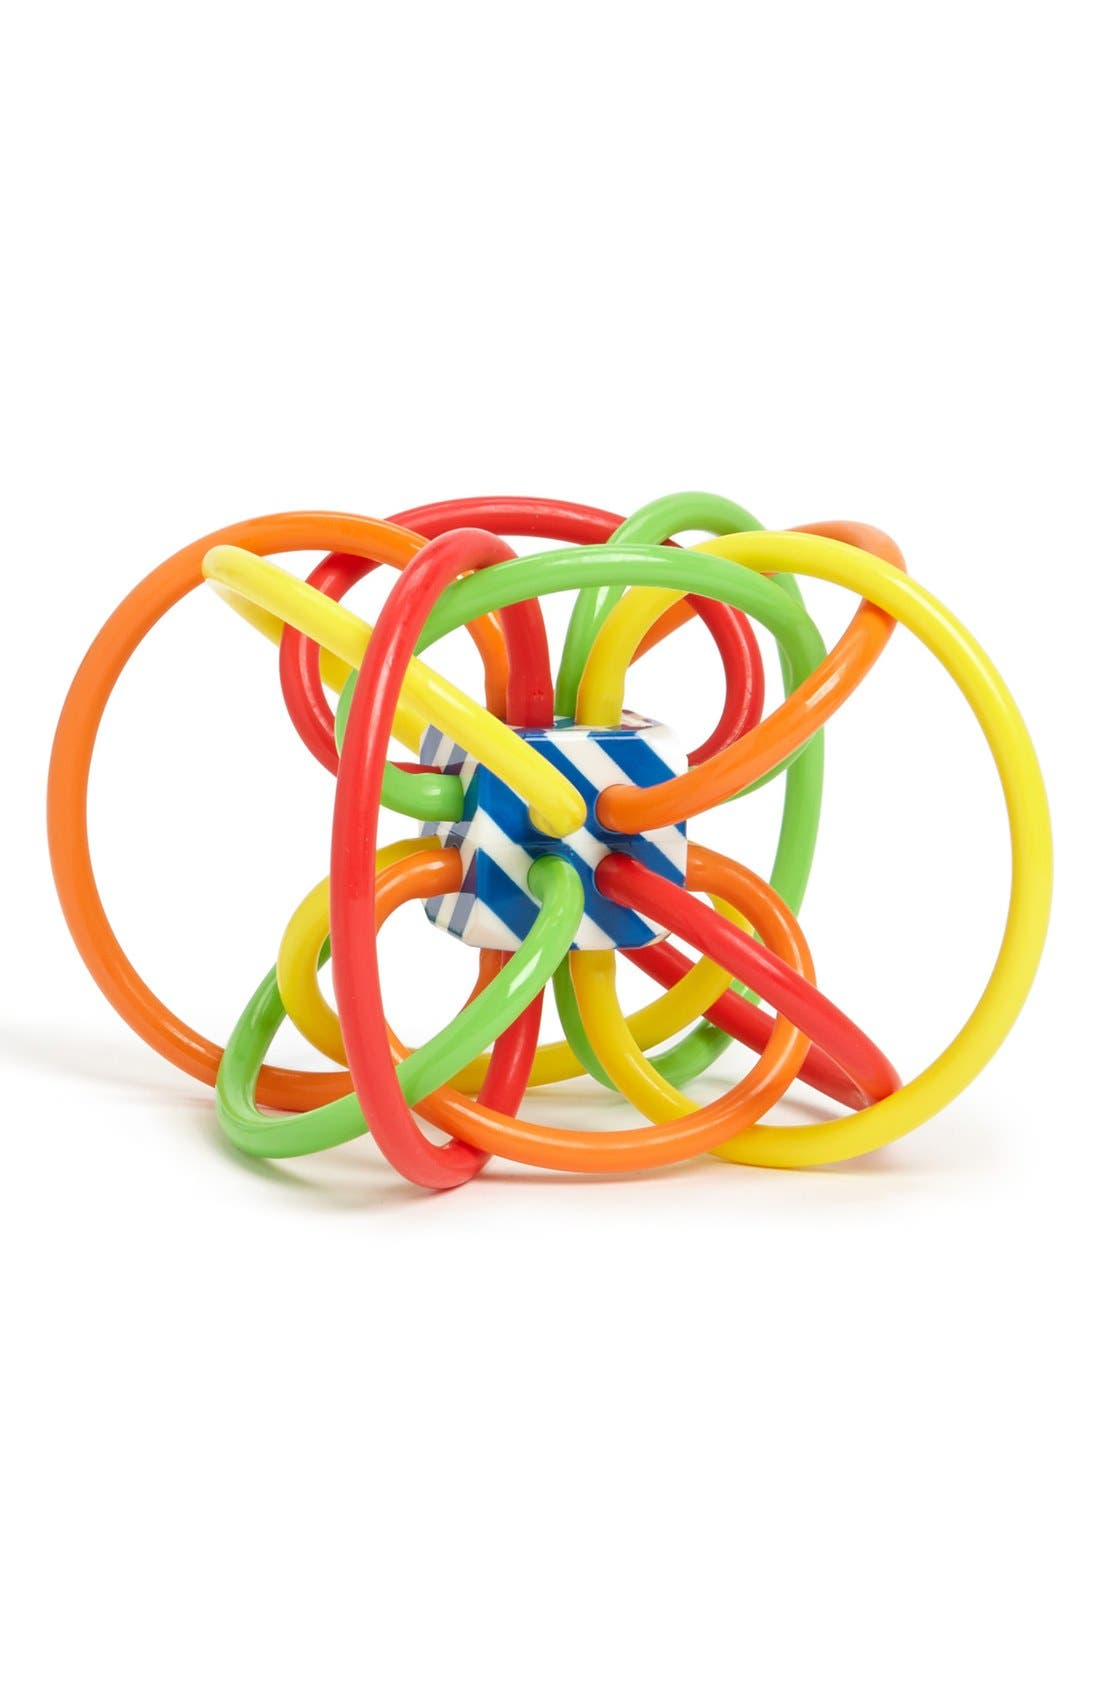 Alternate Image 1 Selected - Manhattan Toy 'Winkel™' Activity Toy (Baby)